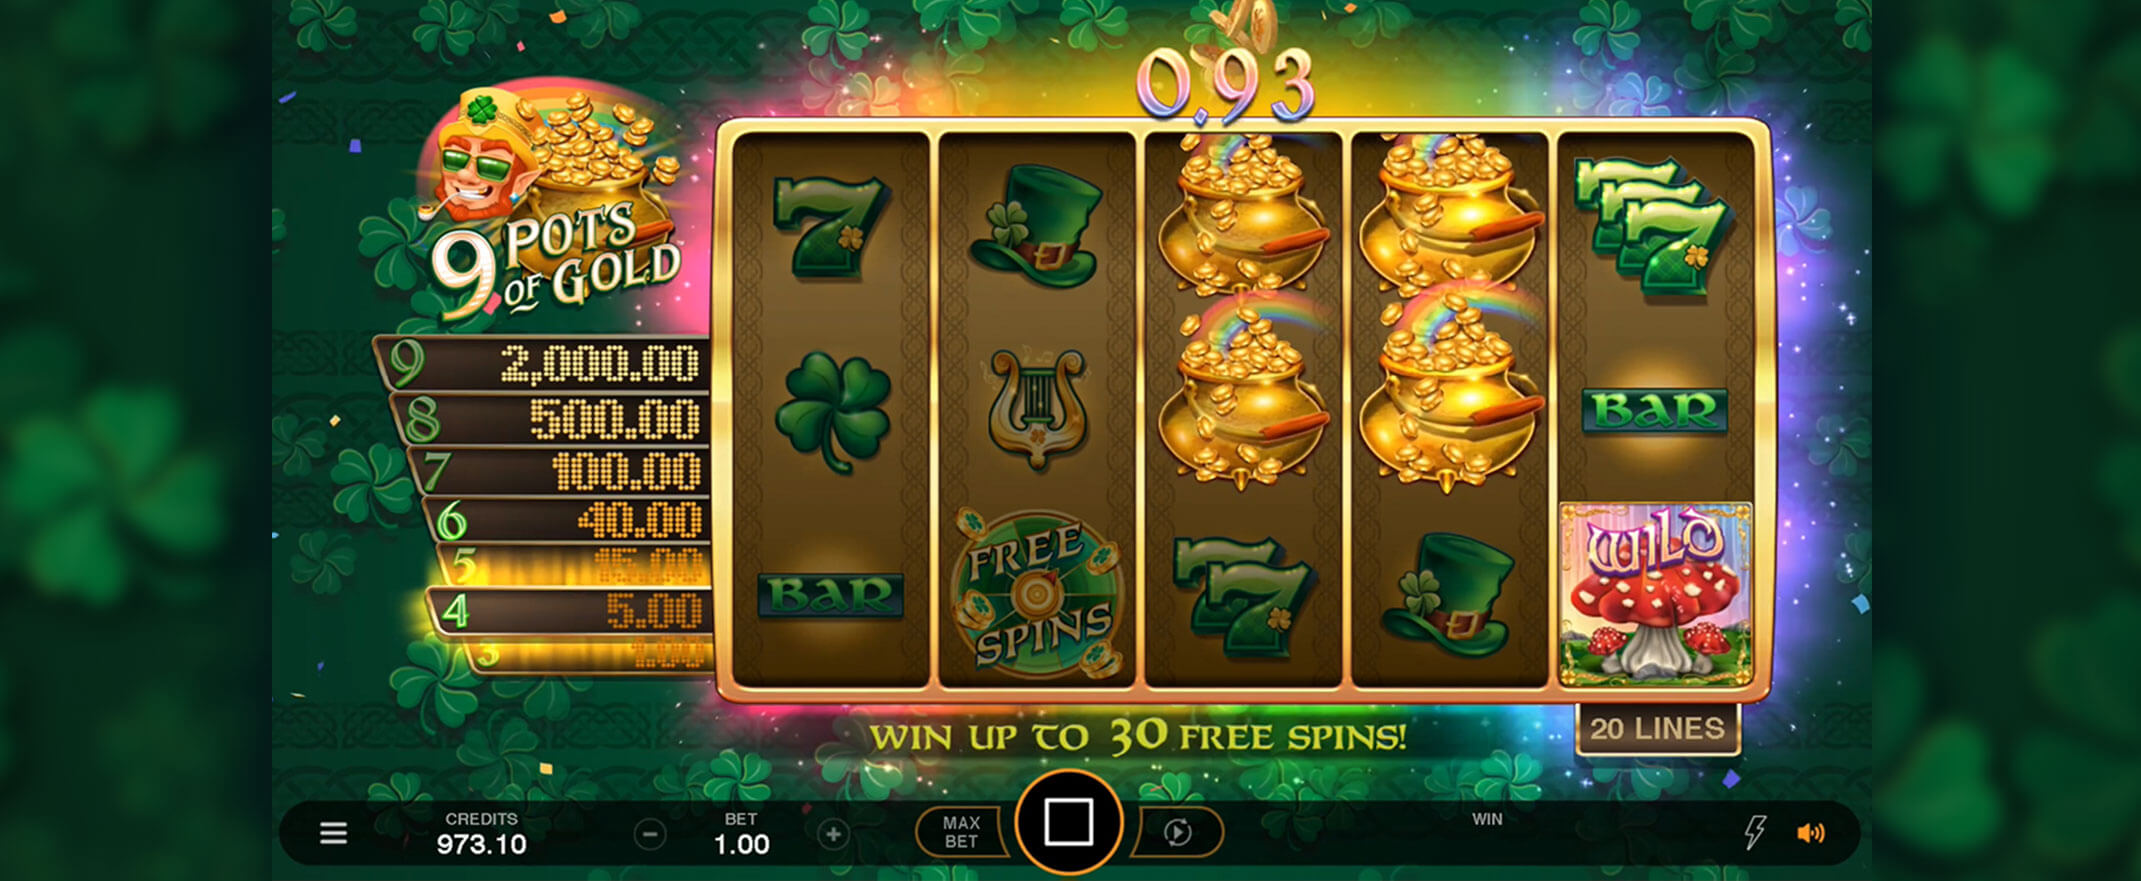 Slots Casino Pot of Gold and Others